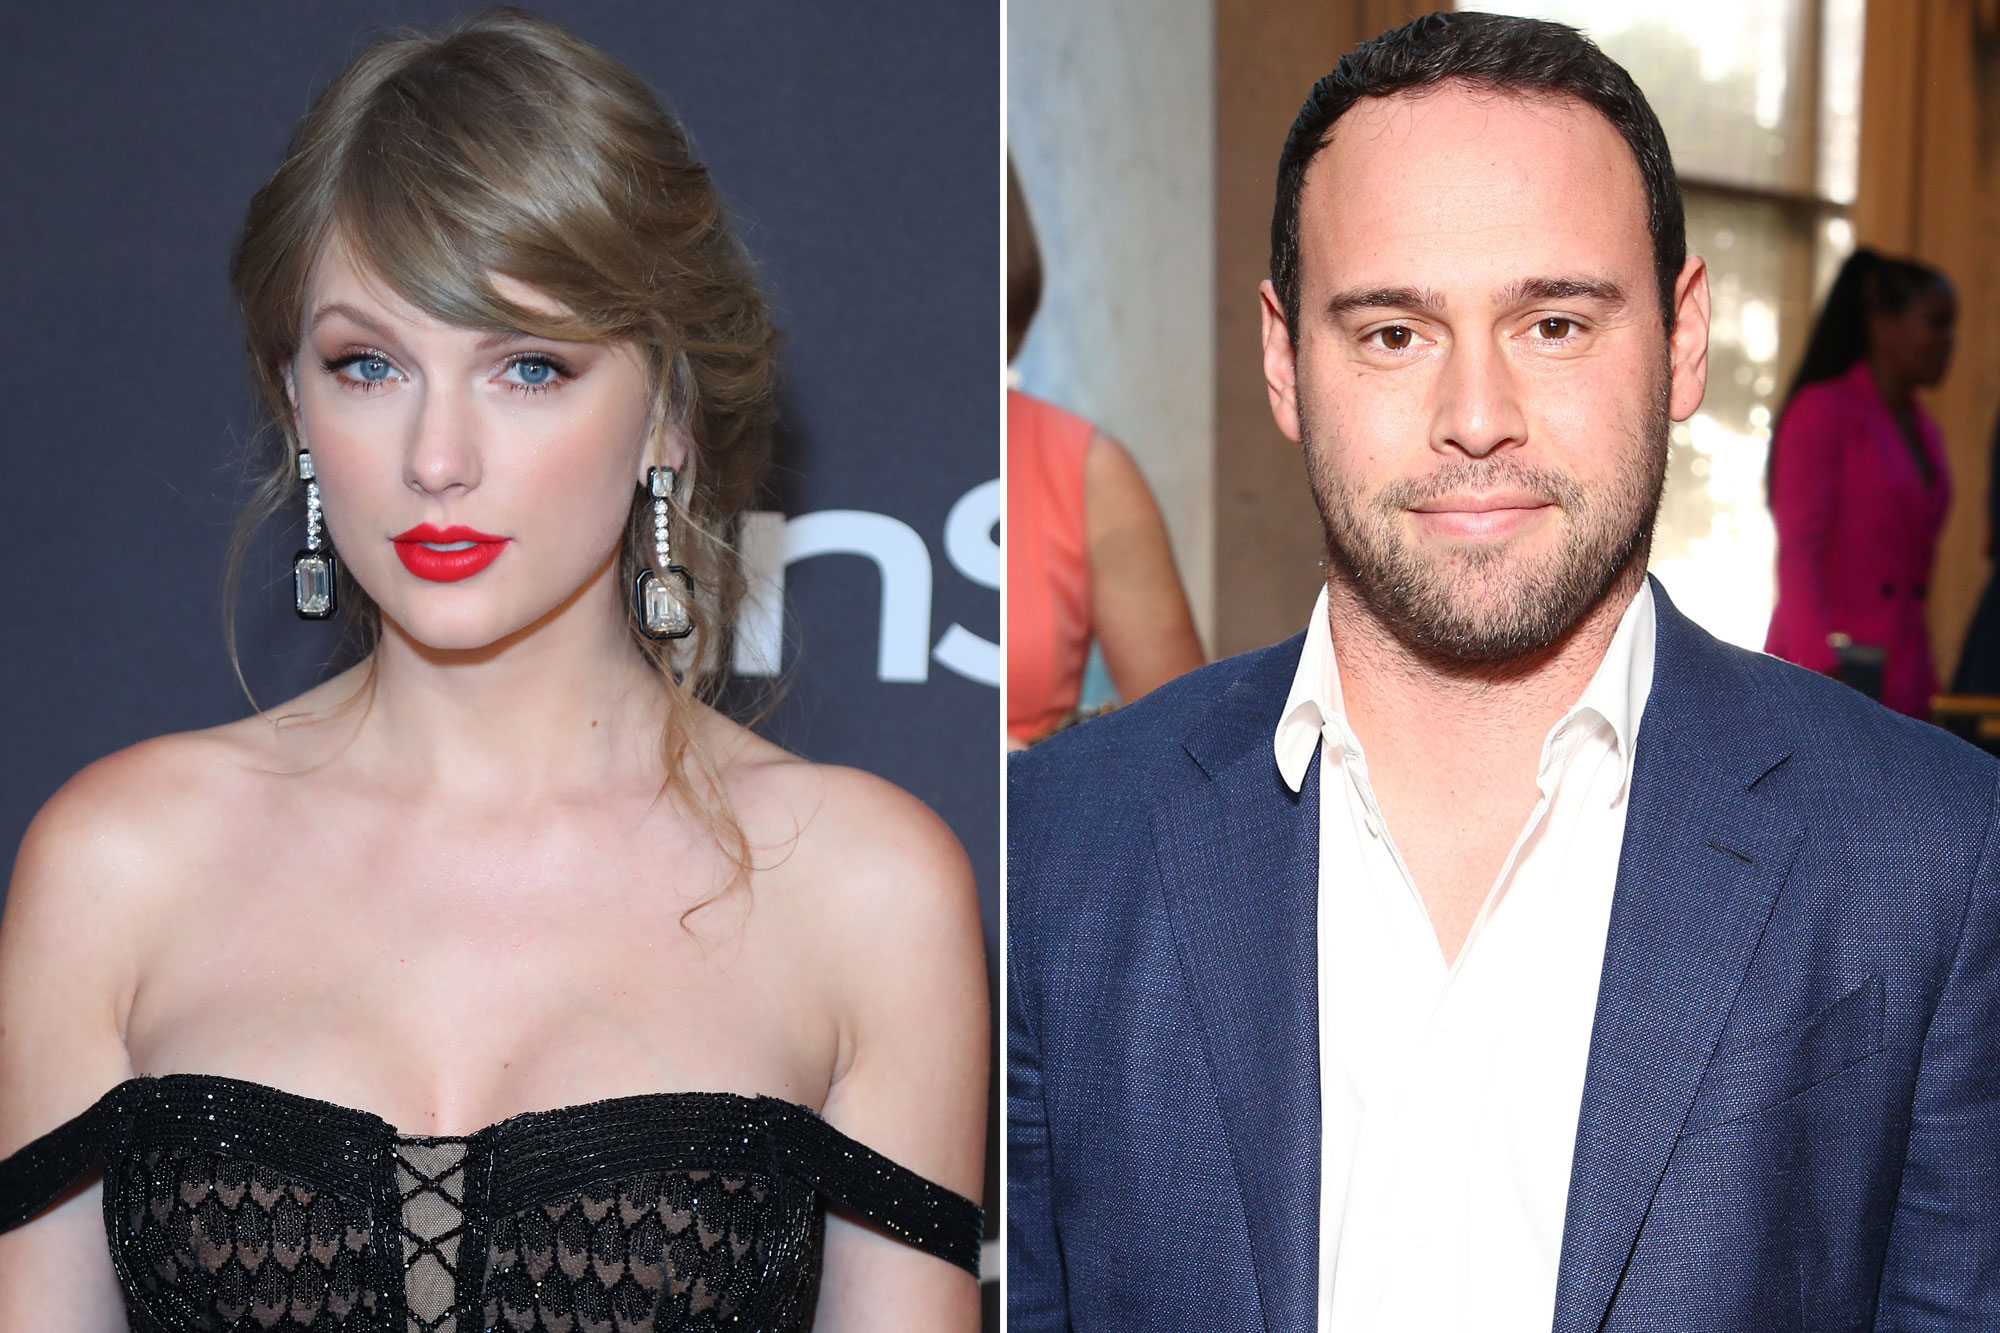 Taylor Swift Slams Scooter Braun After He Buys Masters People Com